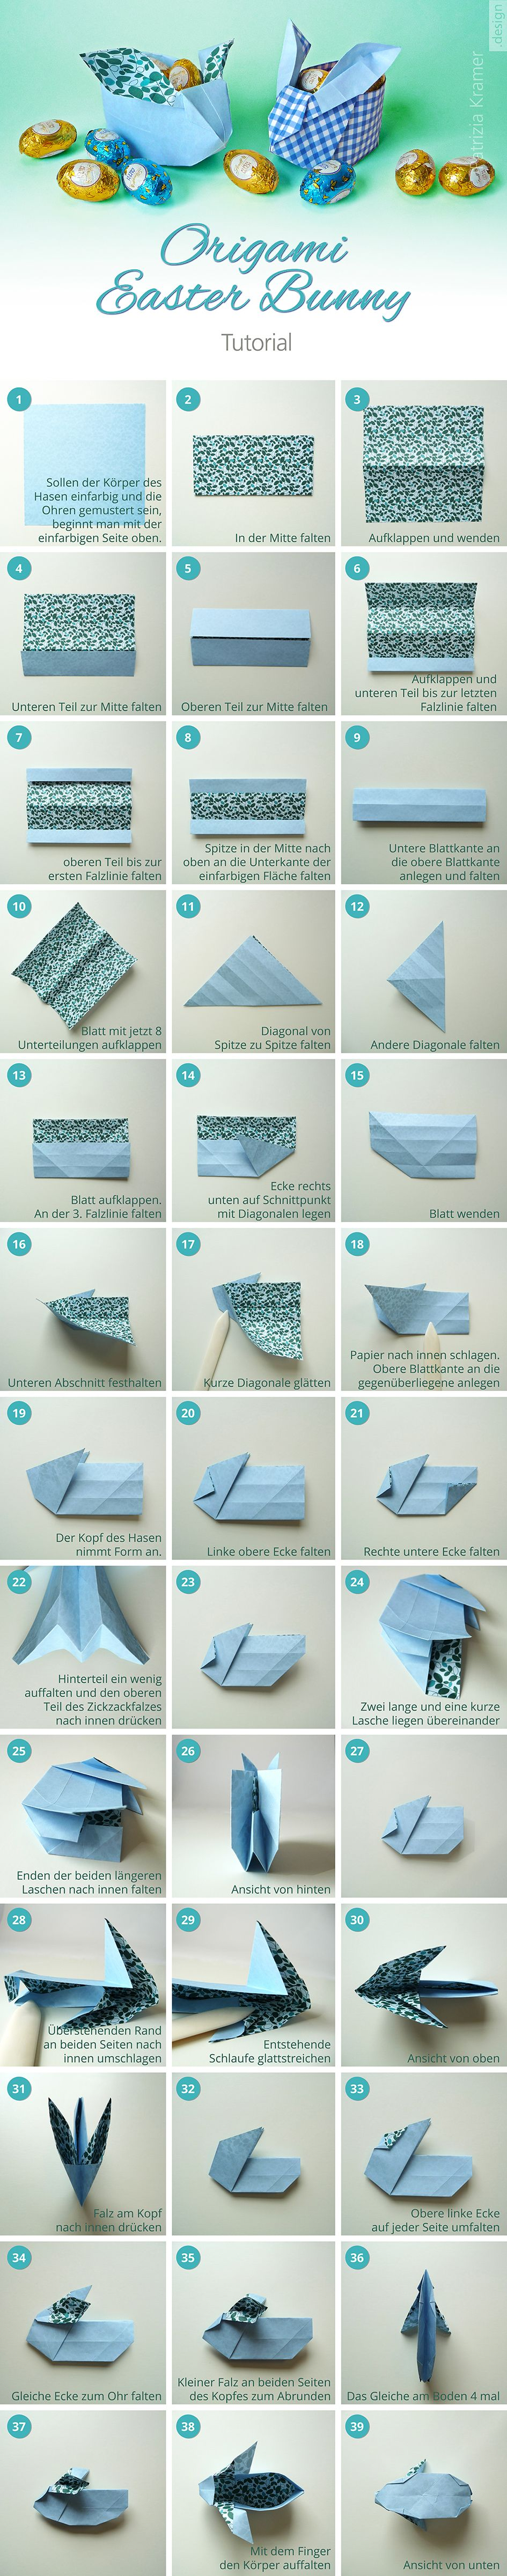 origami easter bunny tutorial easter ostern pinterest tutorials origami and bunnies. Black Bedroom Furniture Sets. Home Design Ideas